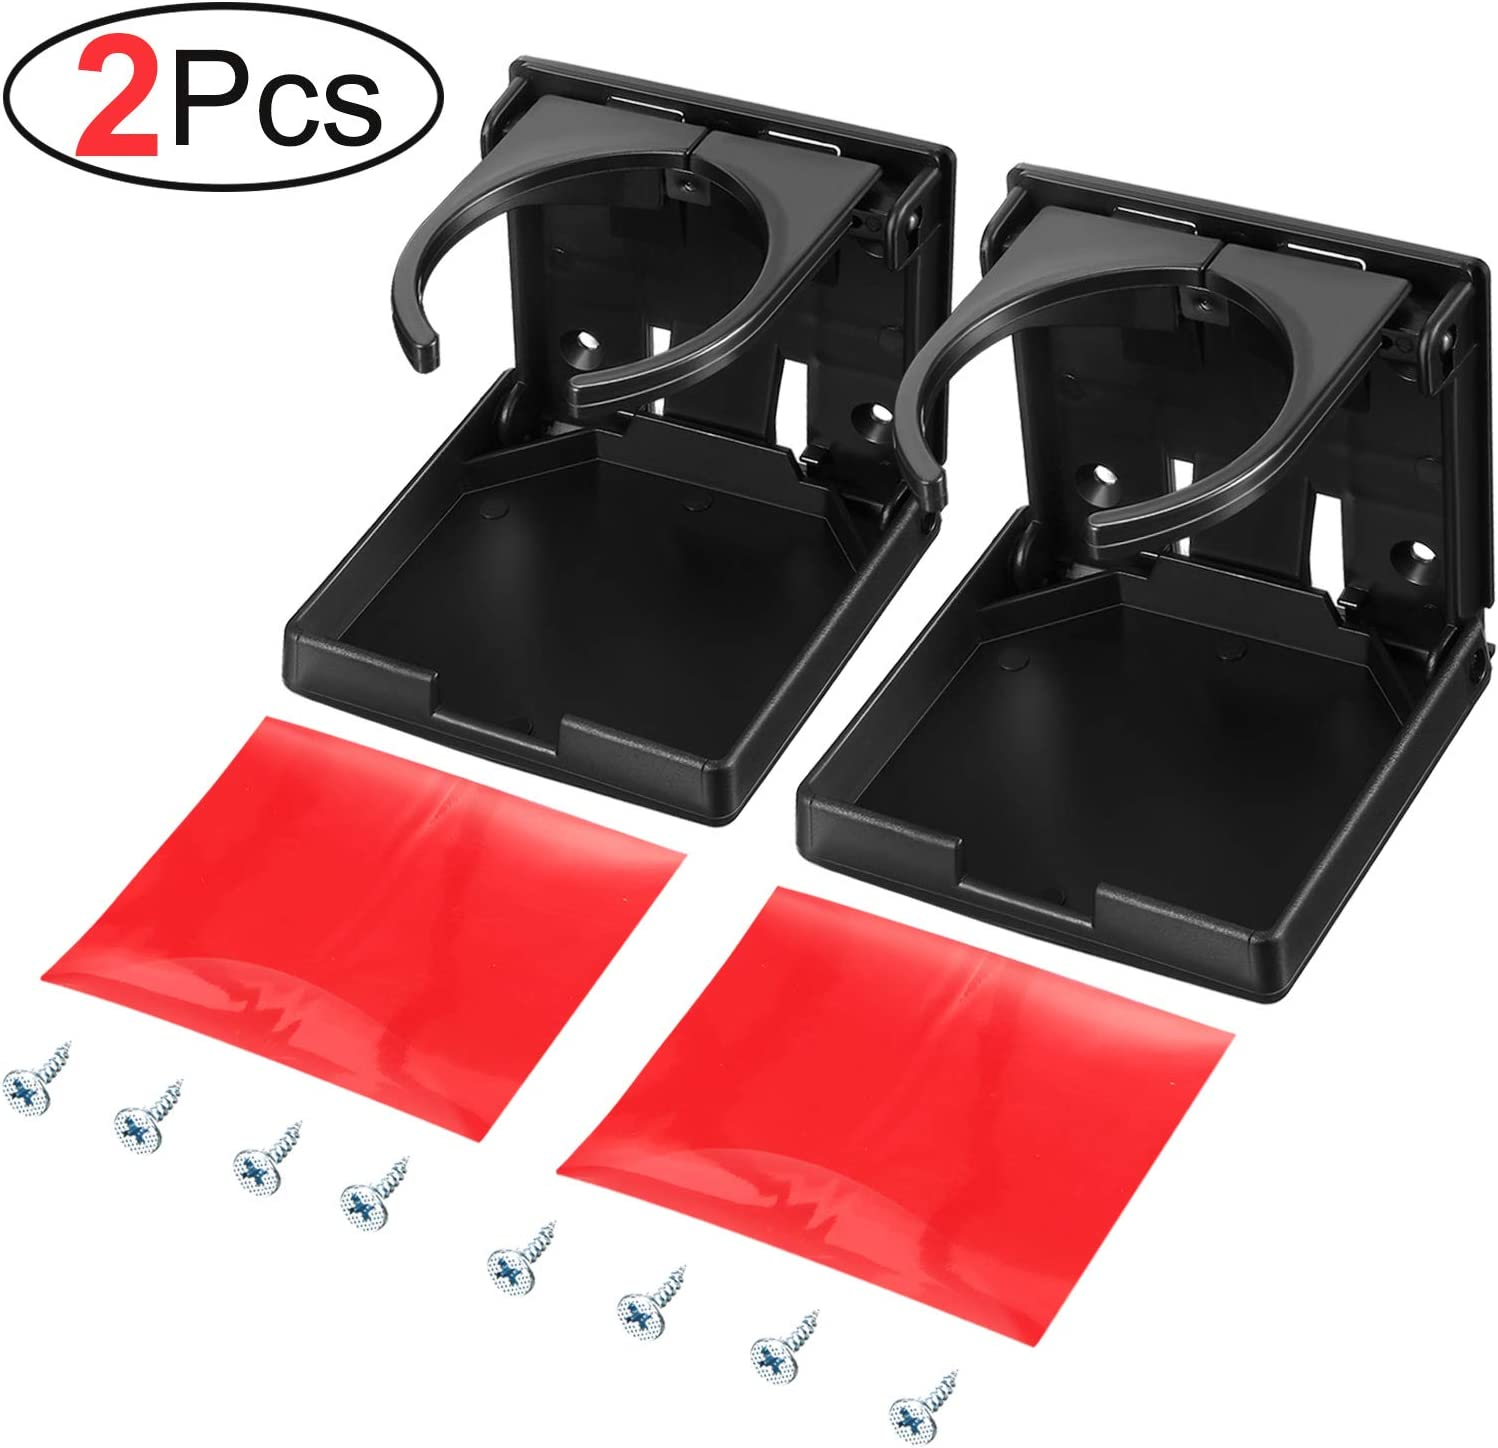 Large Drinks and Almost Any Size Bottle 2 Pack Universal Adjustable Folding Drink Holder with Screws for Holding Mugs Adjustable Cup Holder for Boat//Car//Trucks//RVs//Vans//Home//Leisure Centre